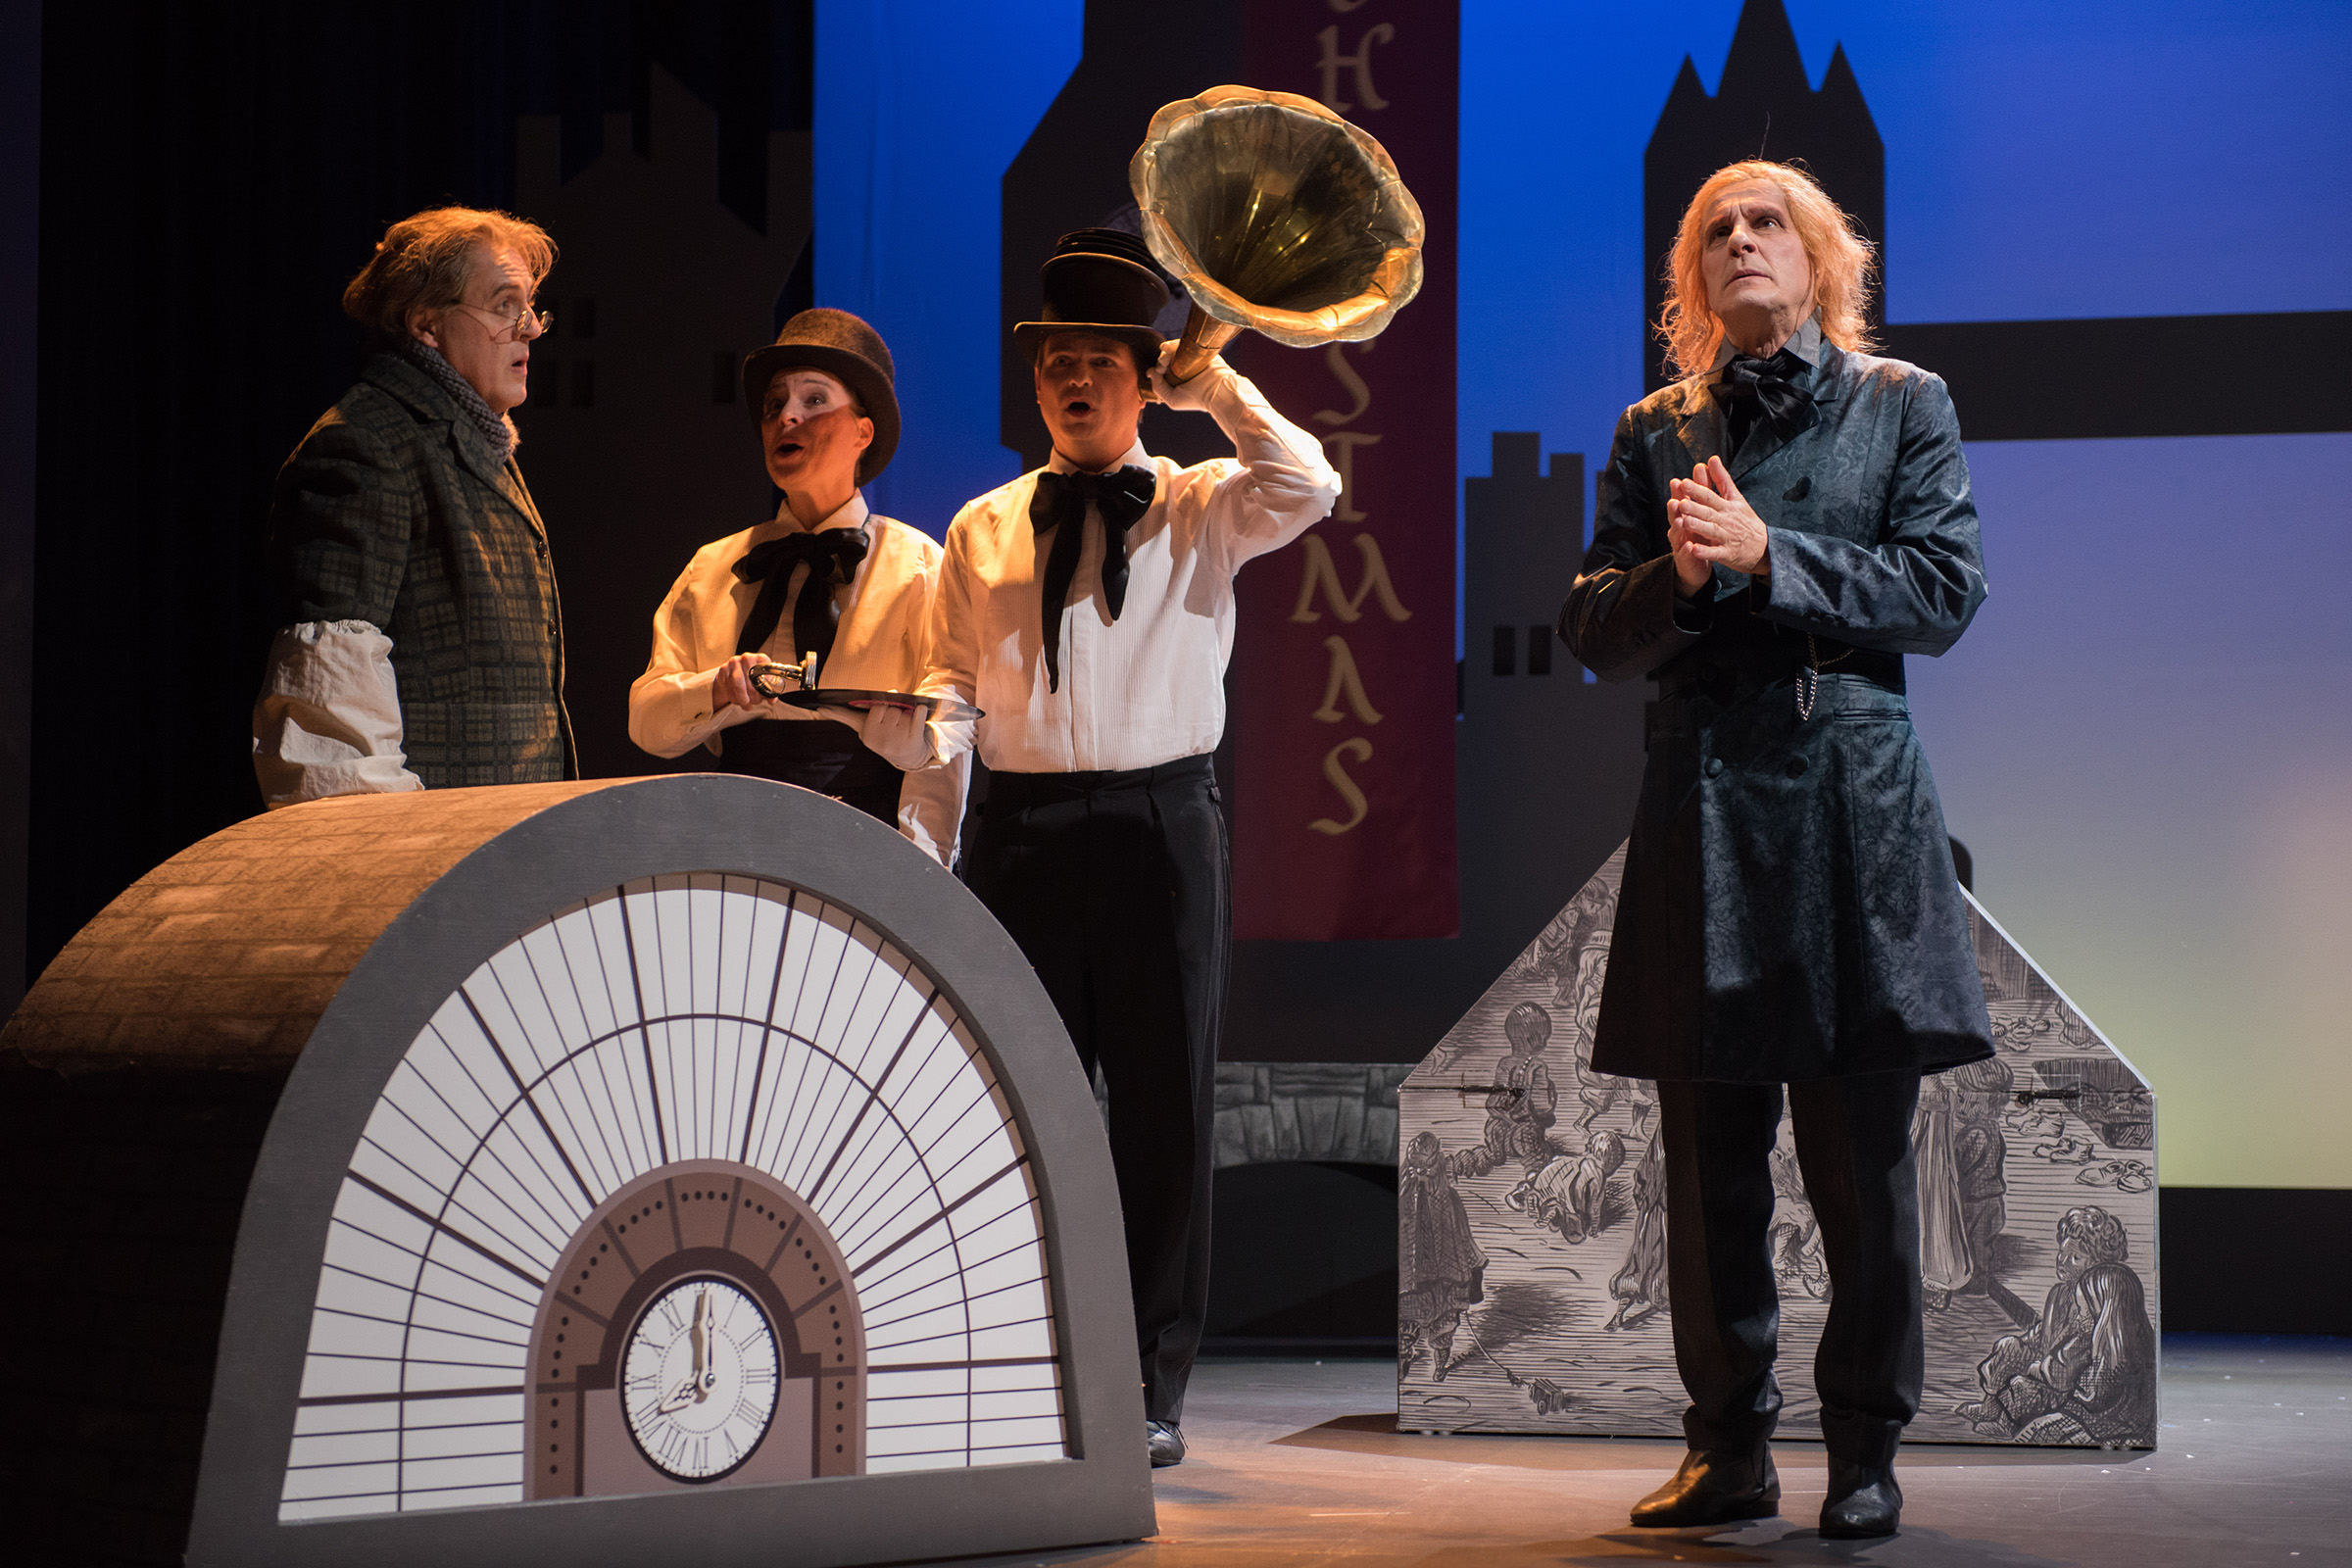 A Christmas Carol – TOBS Theater Orchester Biel Solothurn